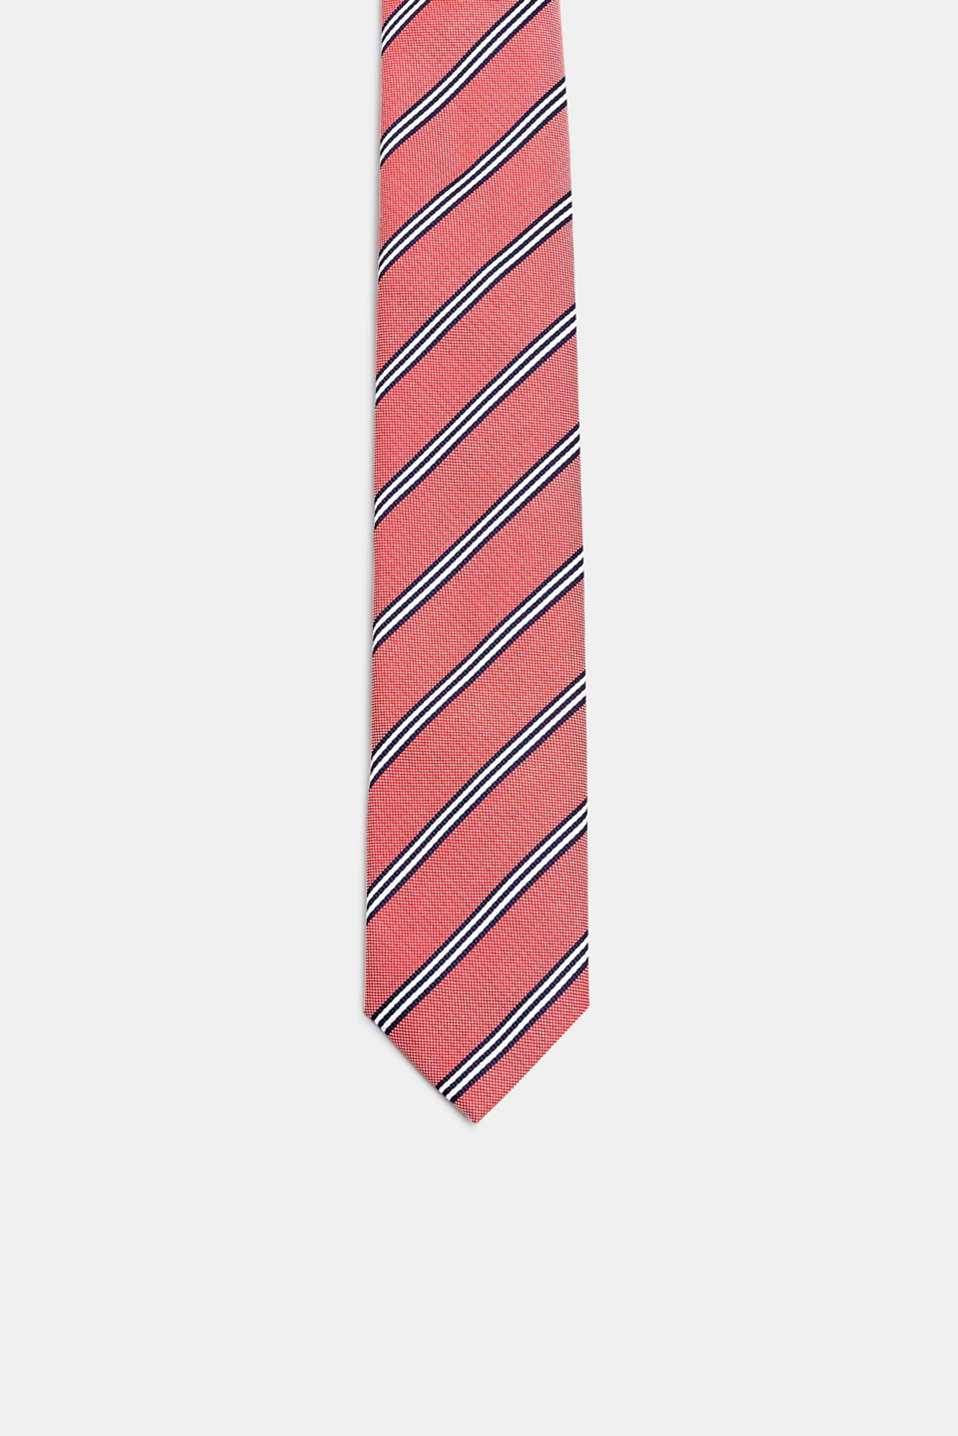 Esprit - Tie with a striped pattern